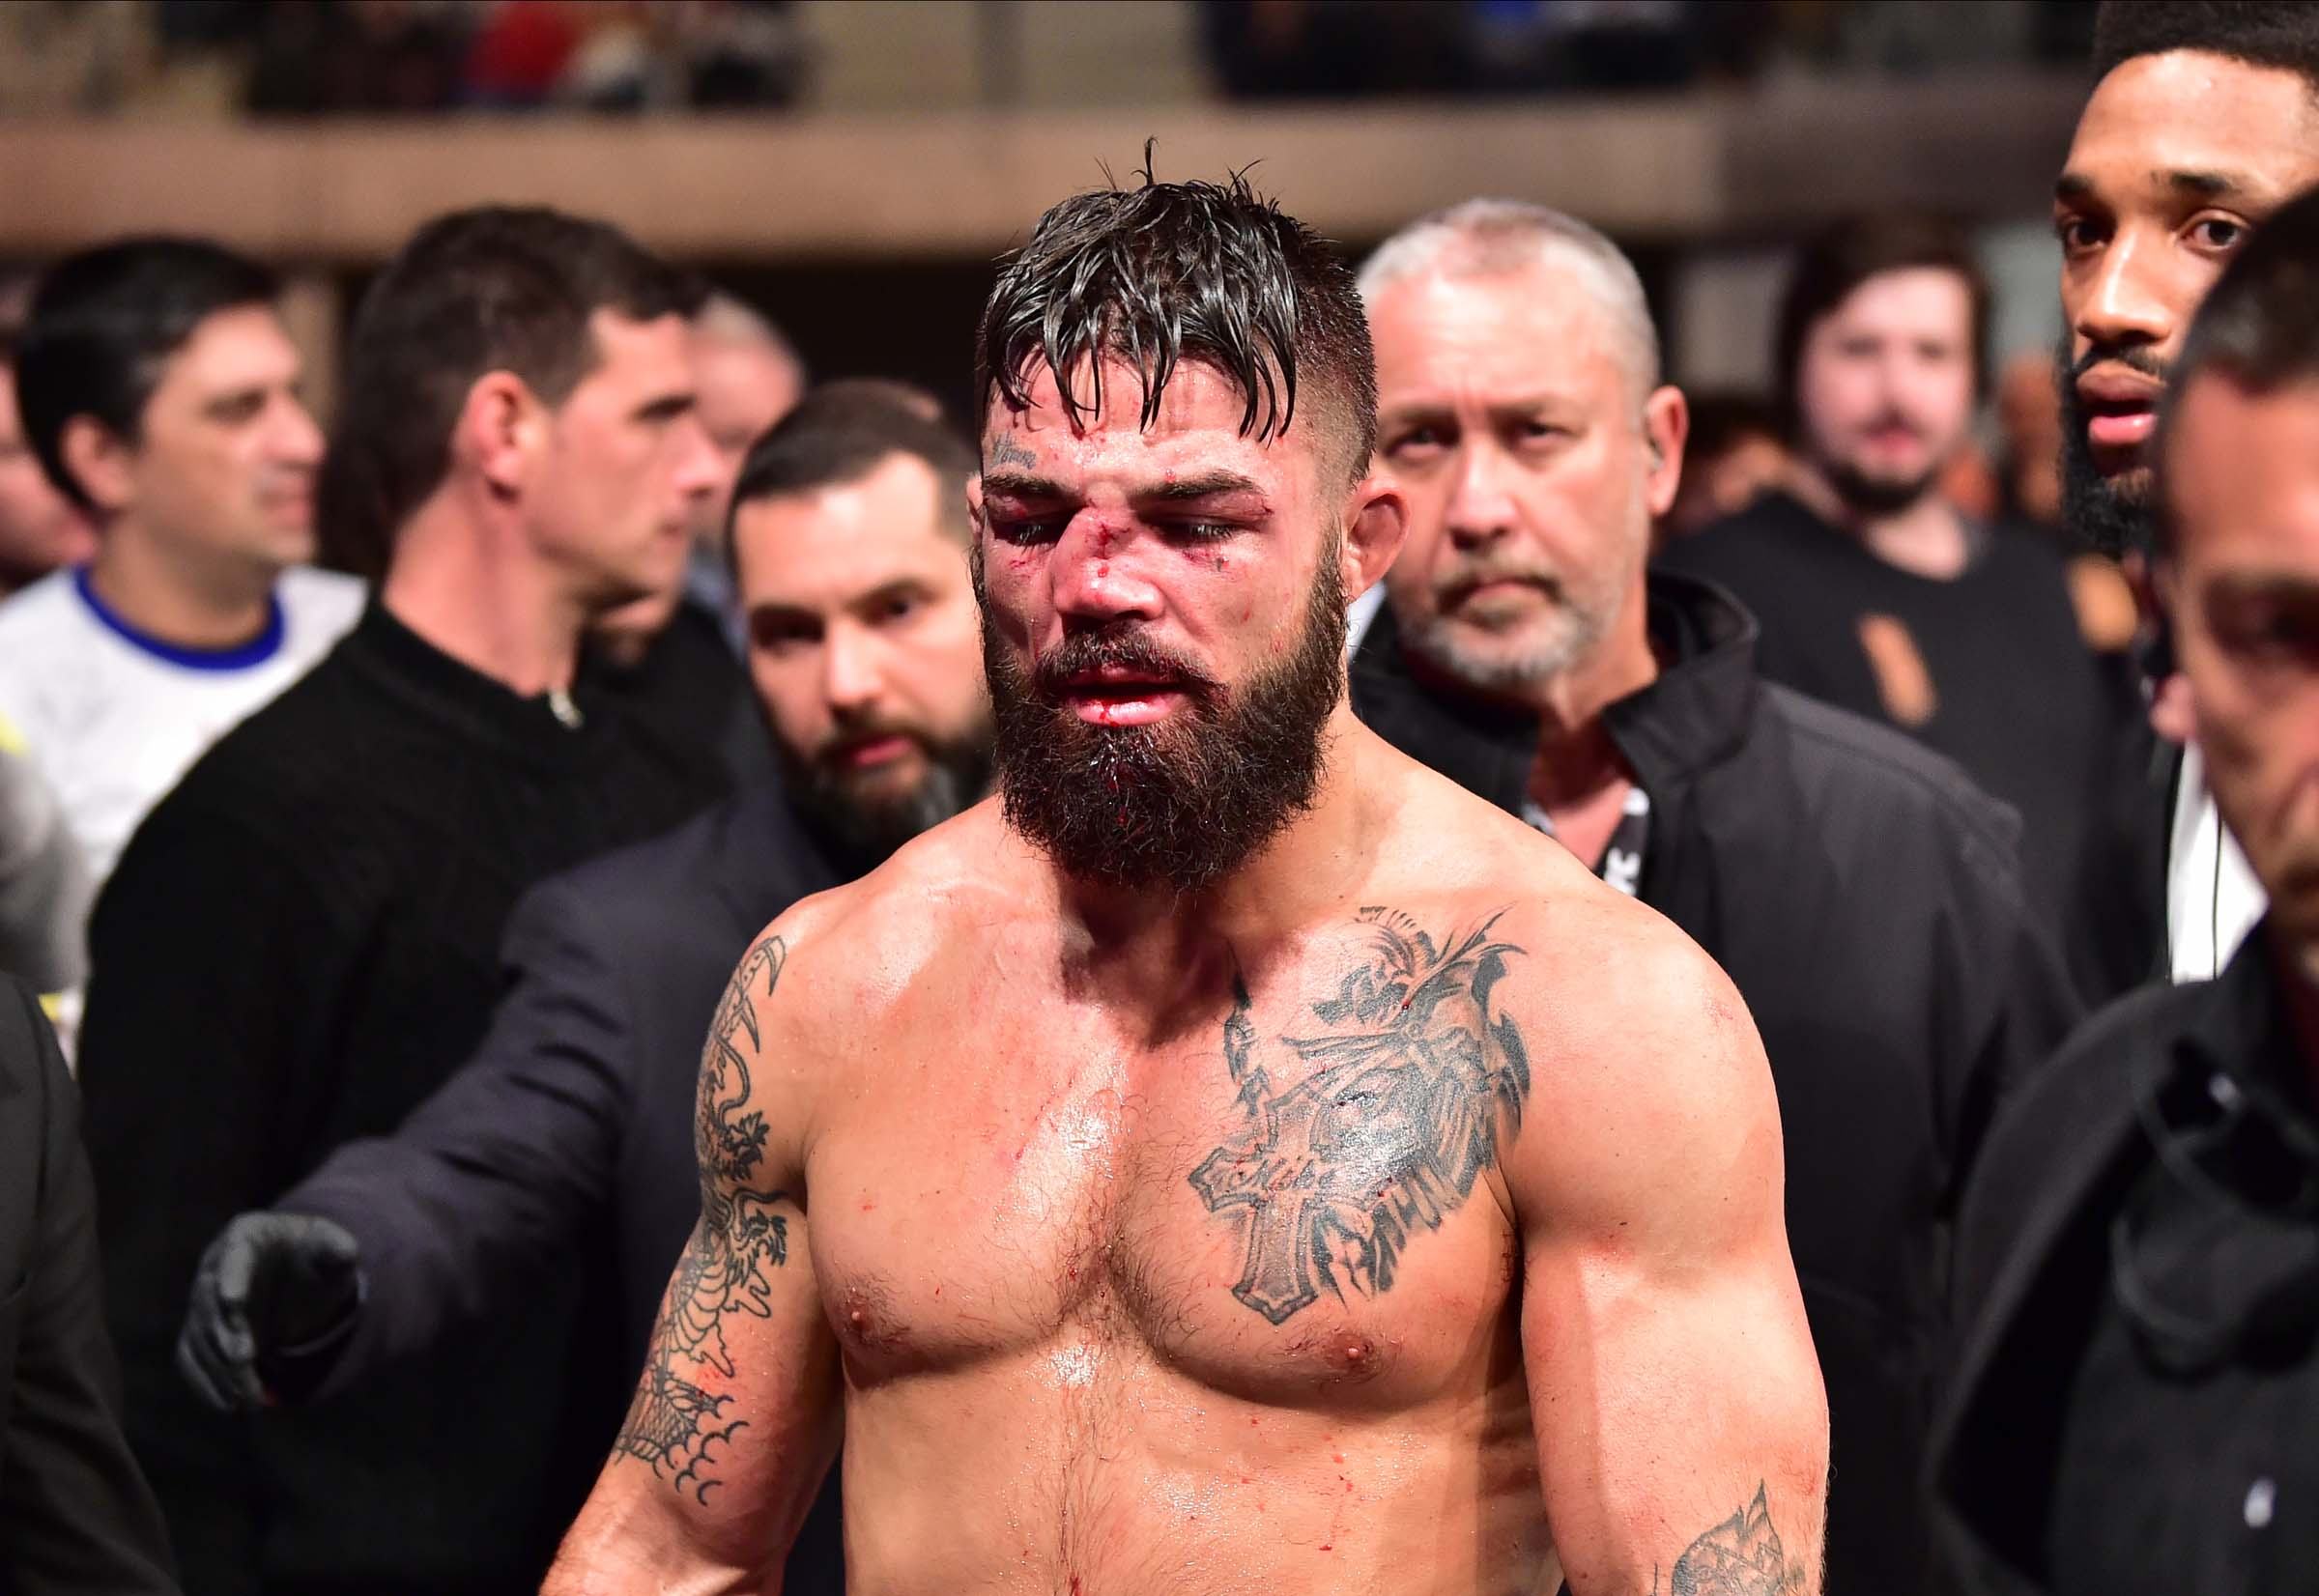 UFC's Mike Perry 'Spills own blood' in alarming social media posts